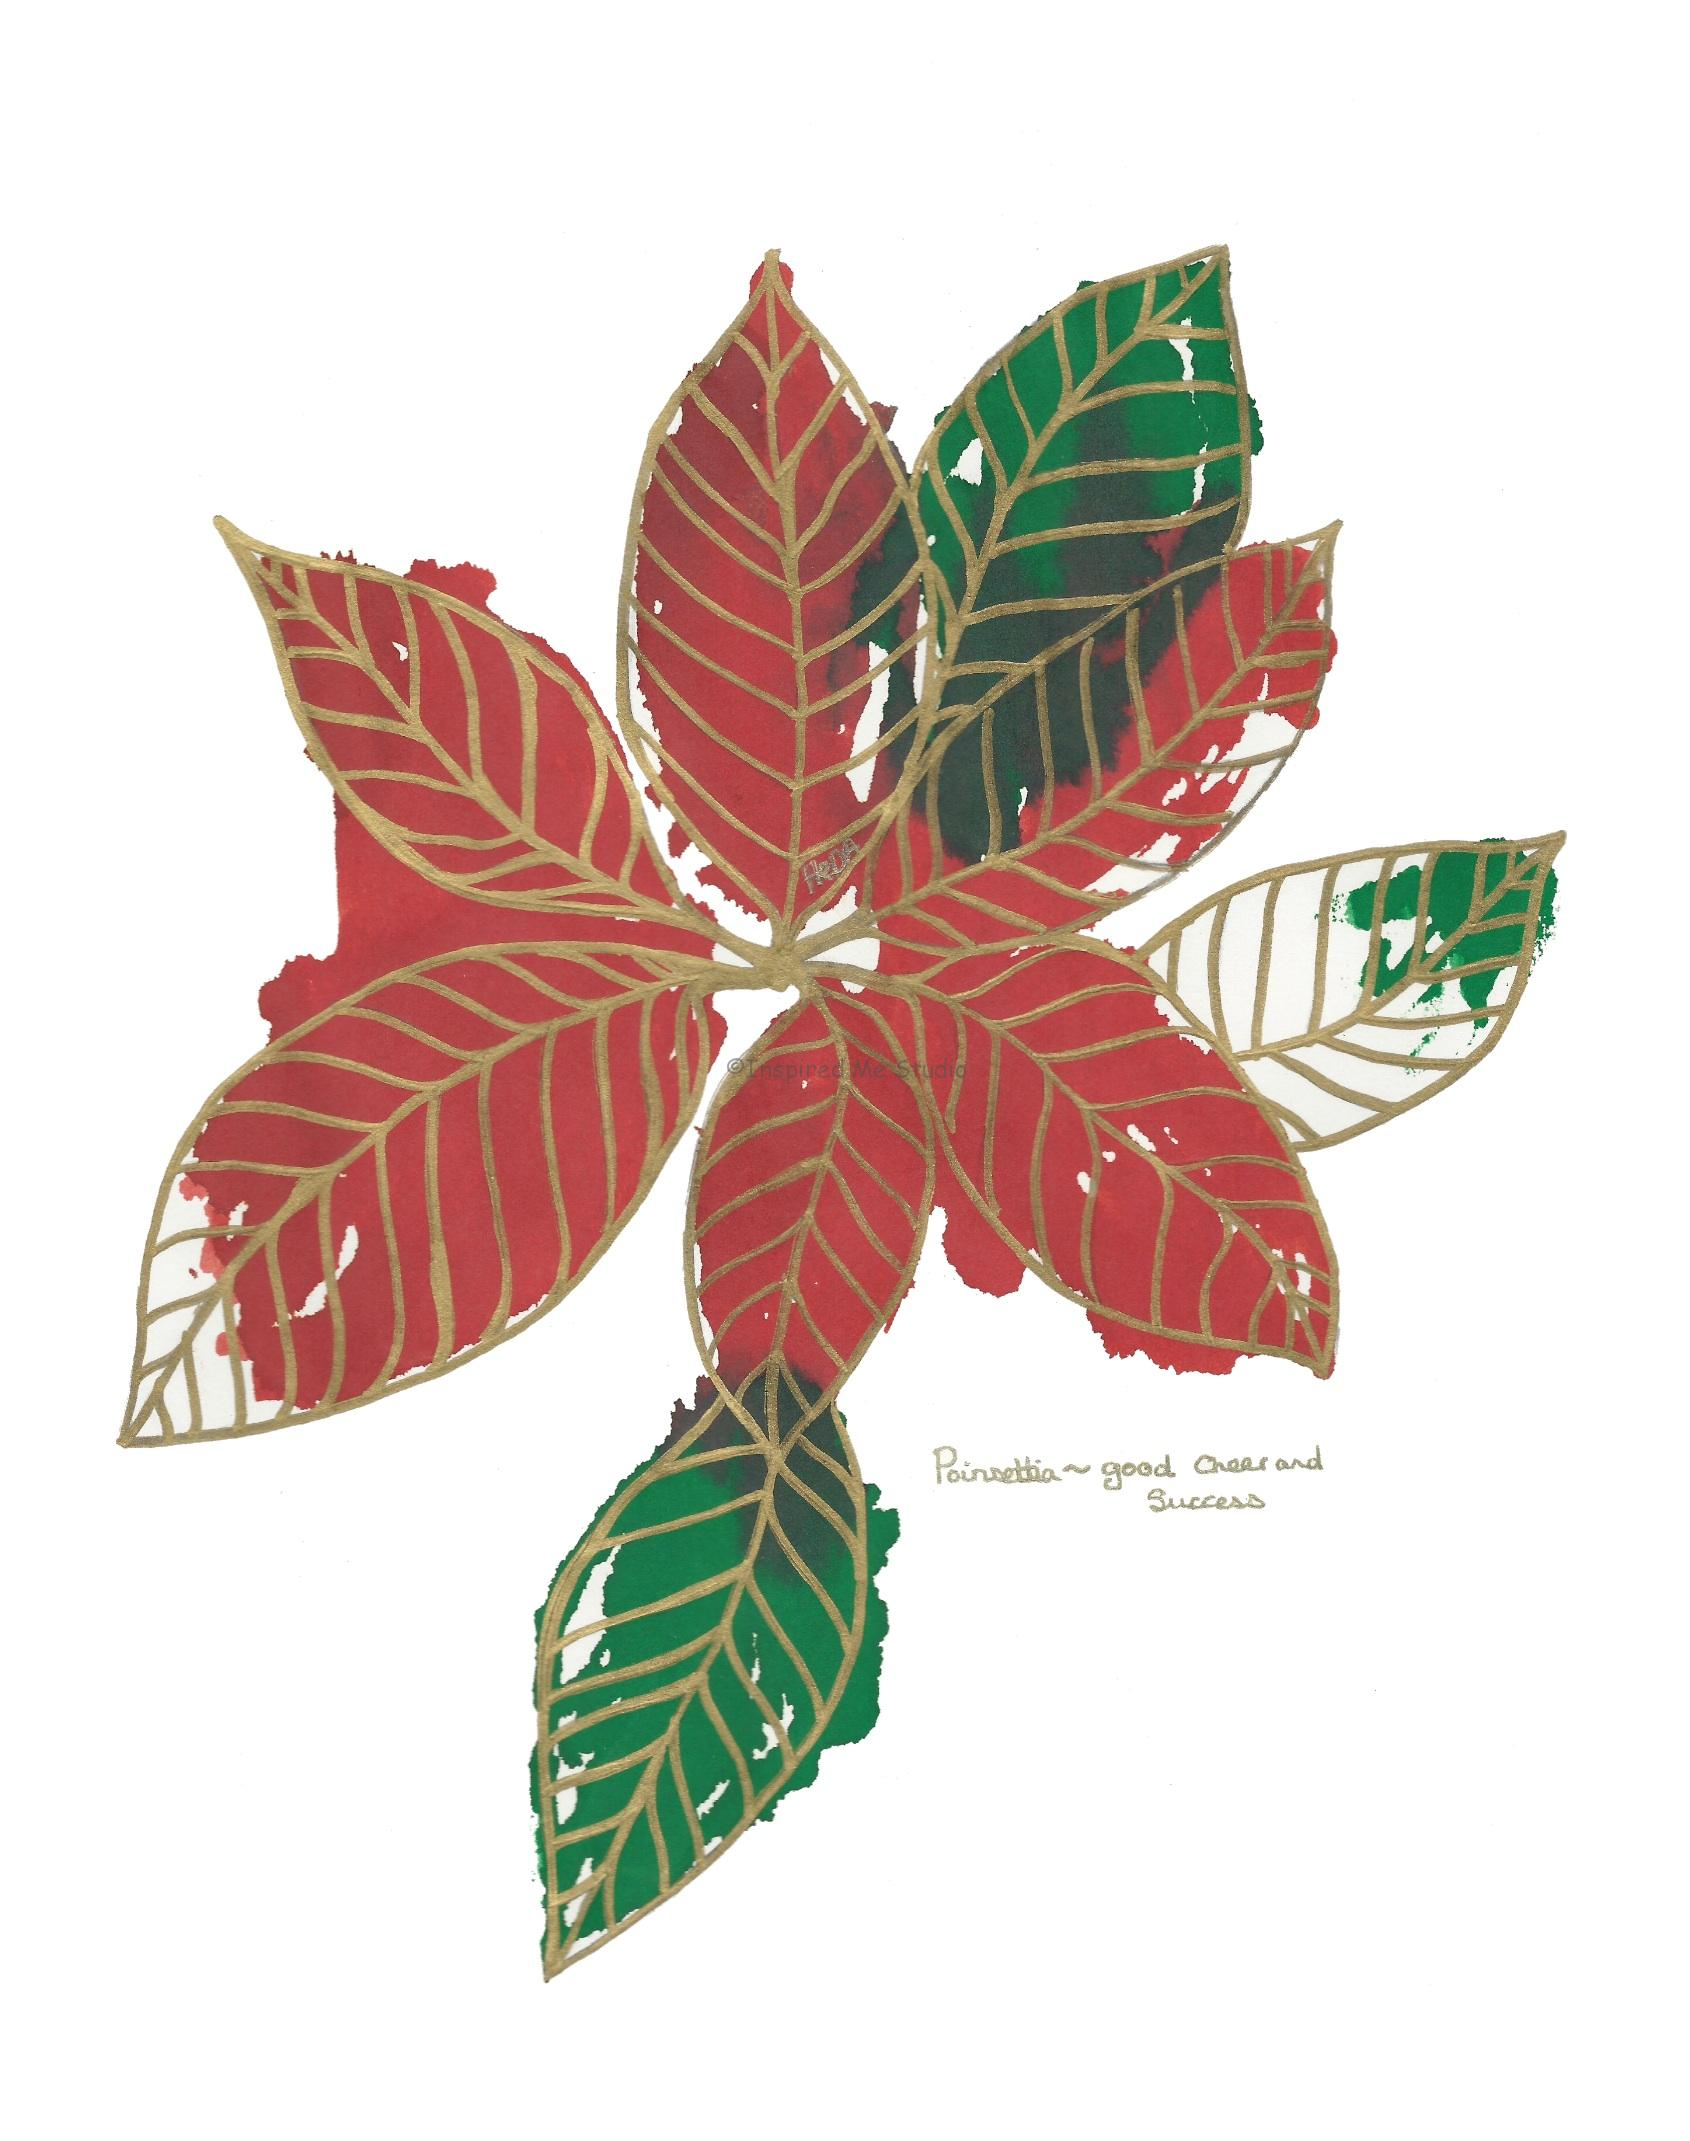 Green and red Poinsettia floriogprahy inkblot artwork. The Poinsettia ~ Good cheer and success.